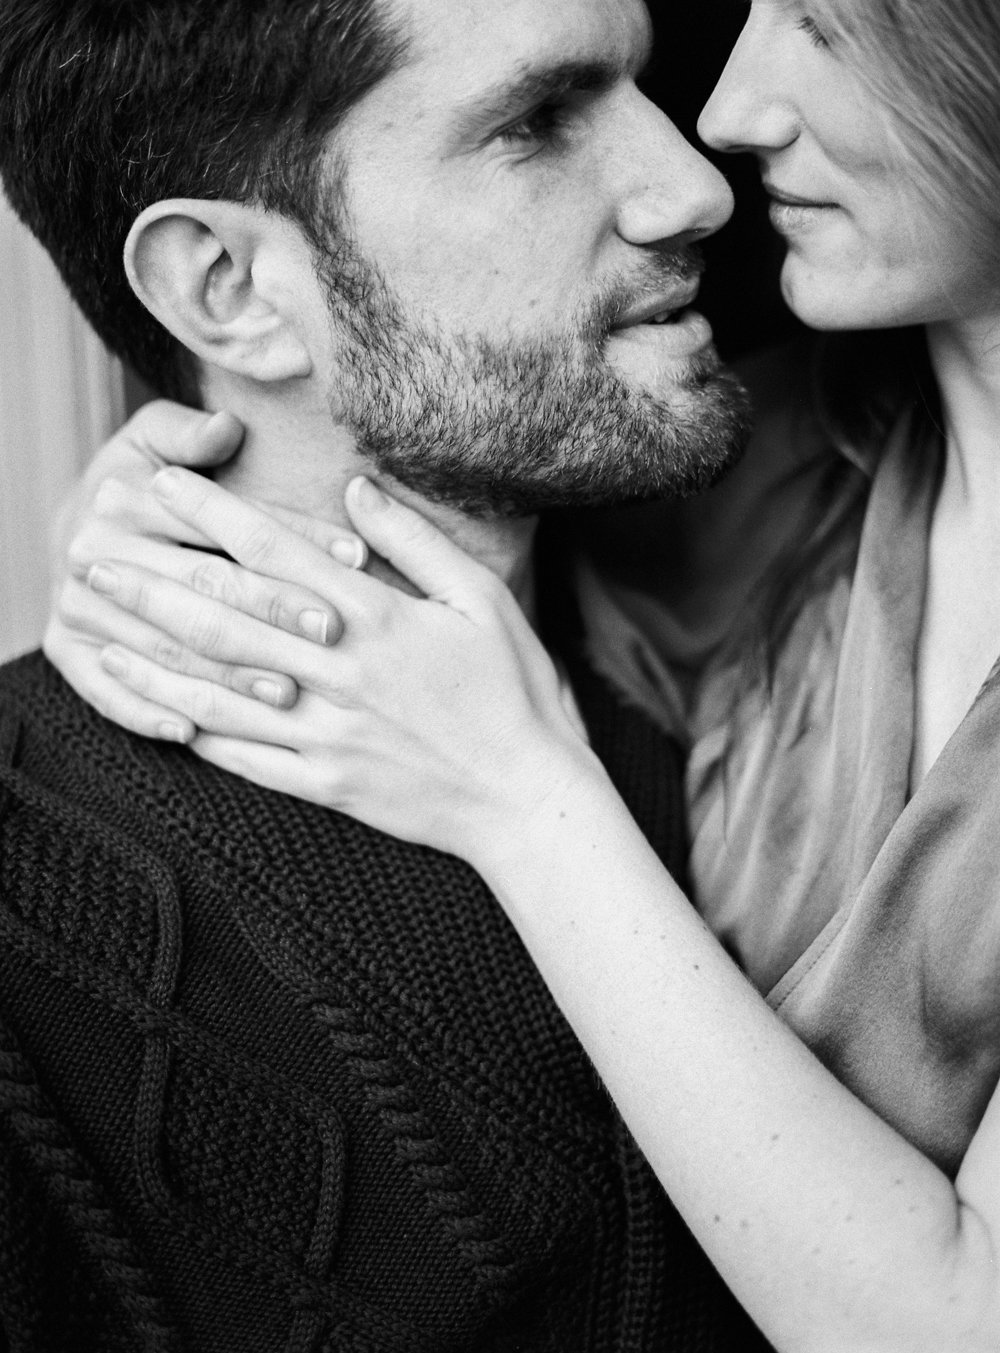 gianelimaphotography_couplesession_gent-19